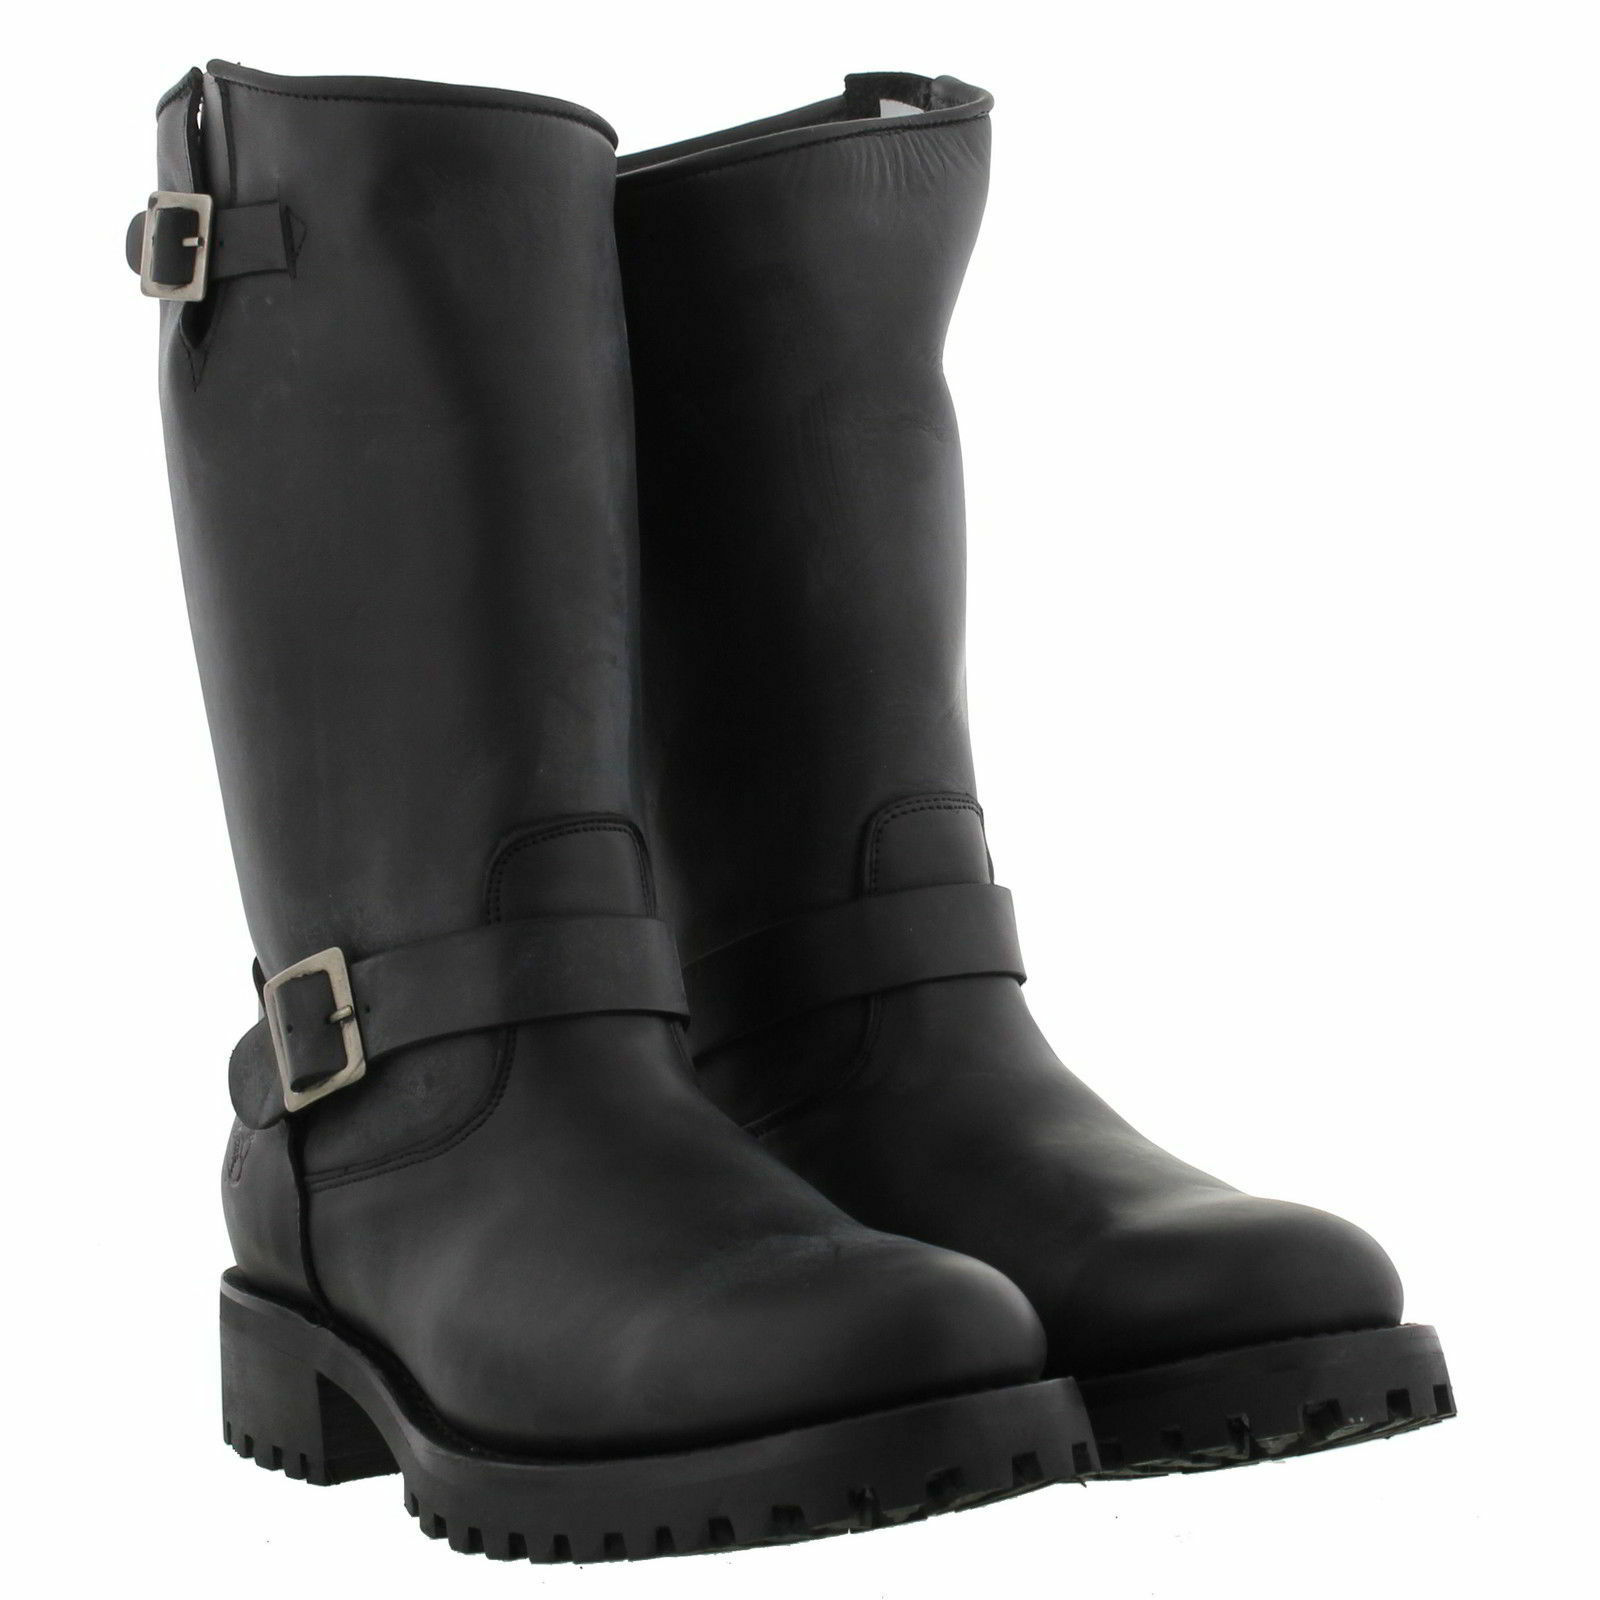 Grinders Wild One Mens Black Leather Biker Boots Sizes Sizes Boots New 27774e